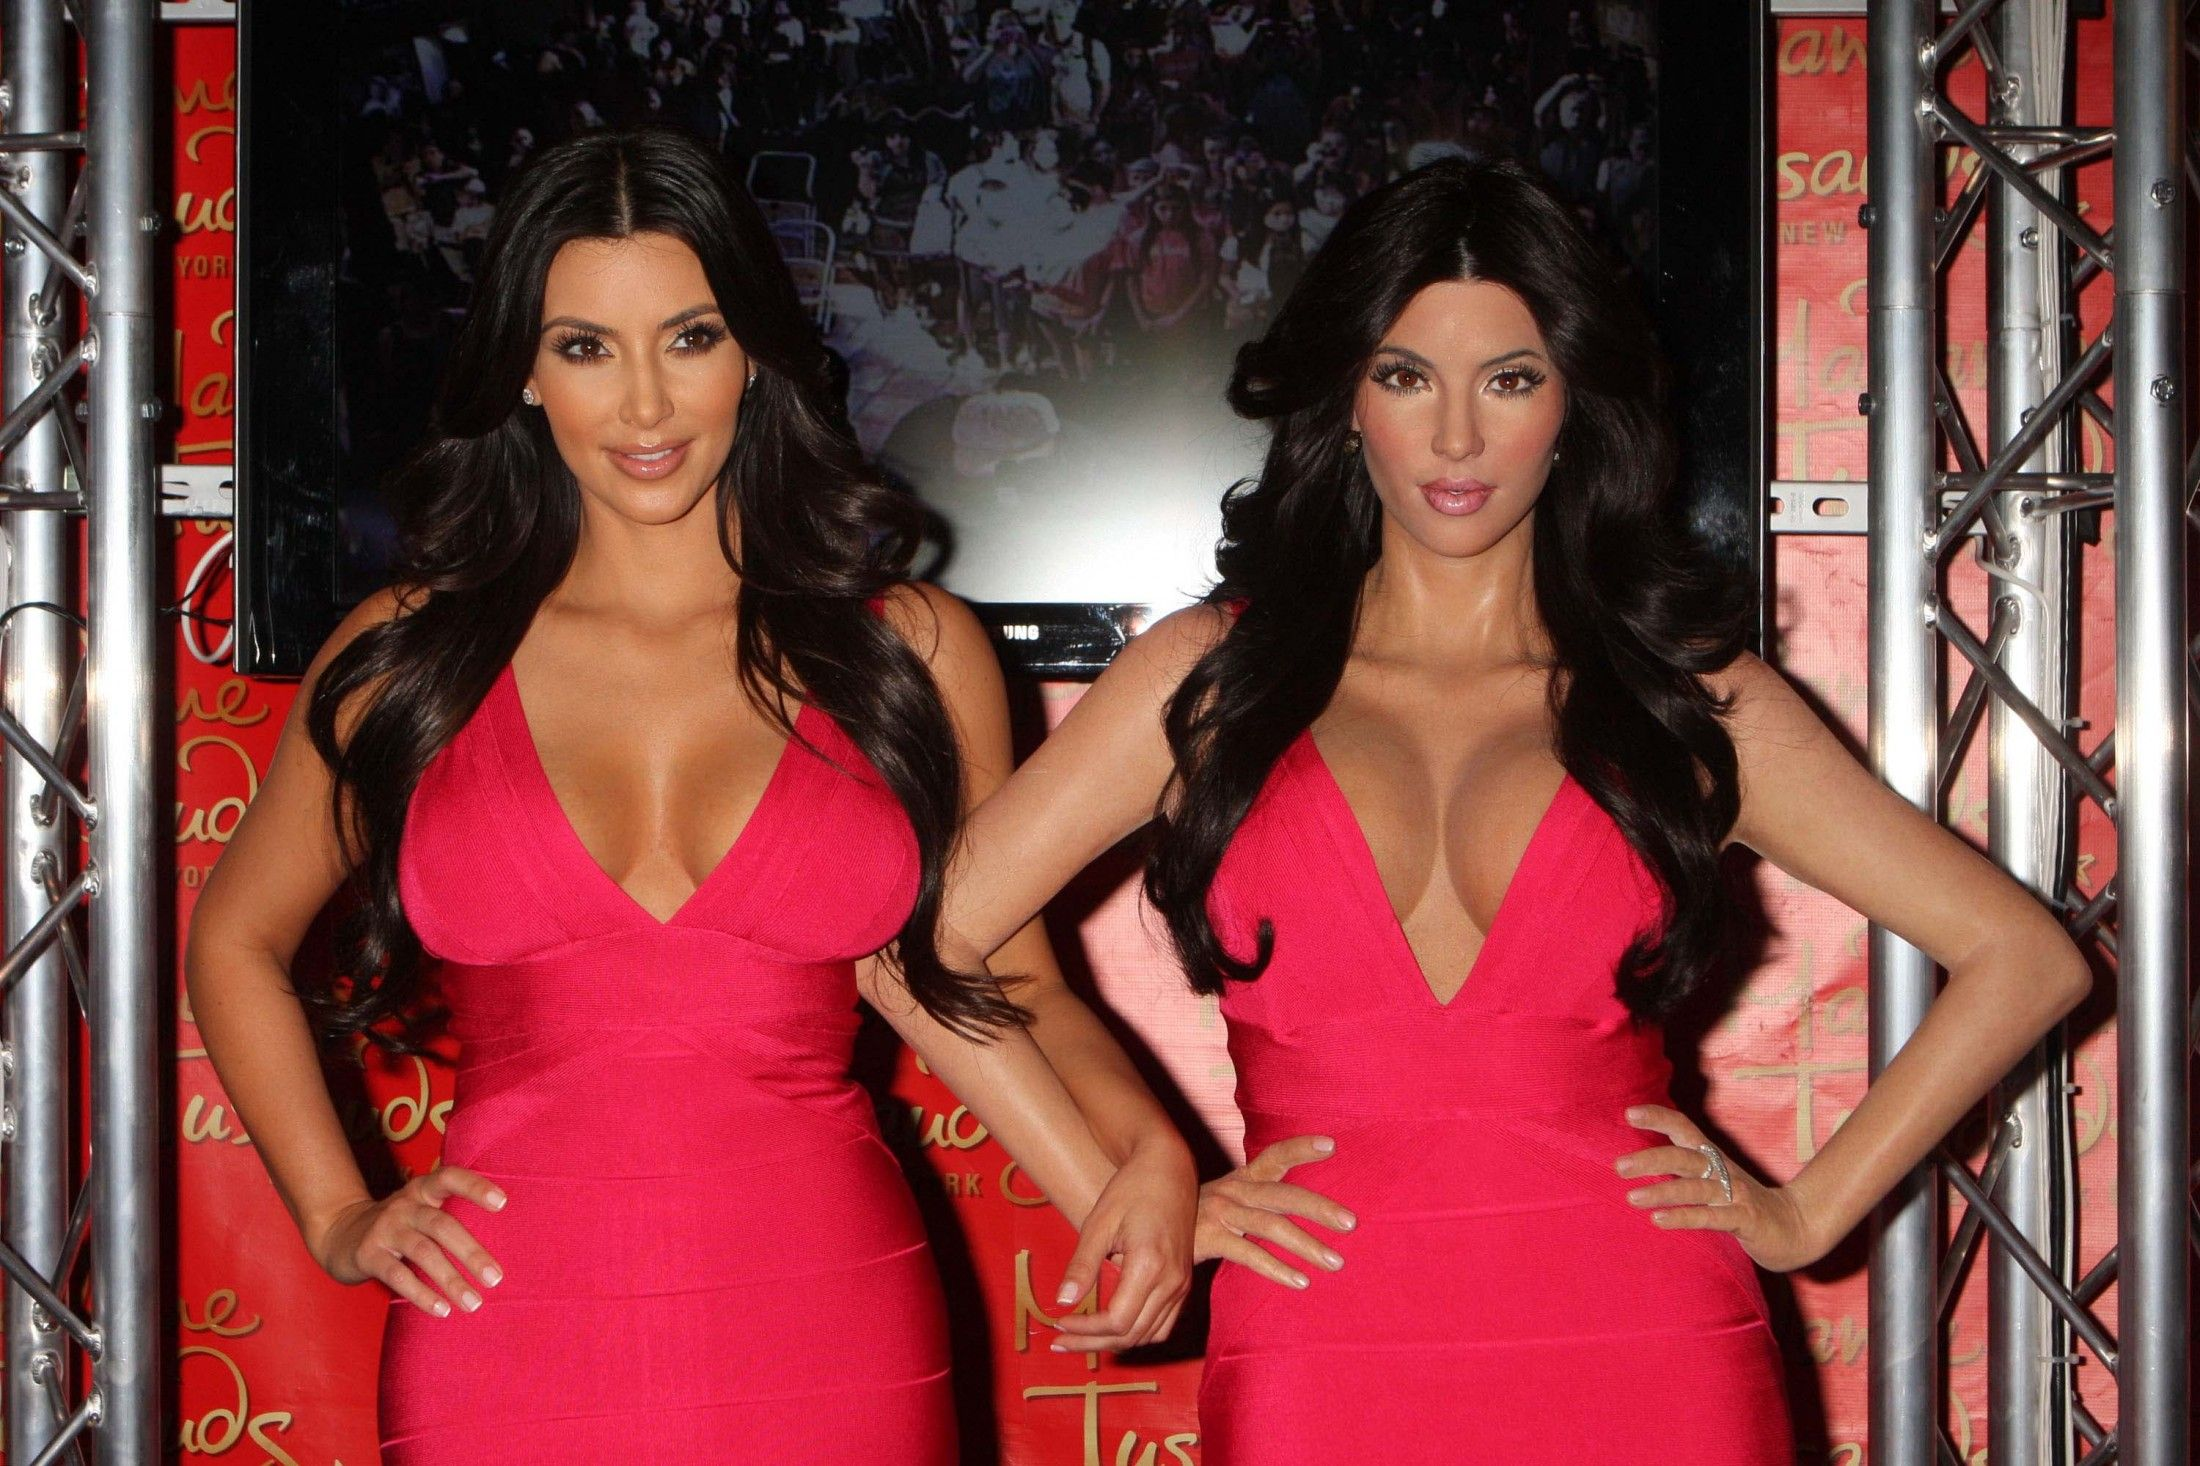 20 of the Freakiest Celebrity Wax Figures at Madame Tussaud's